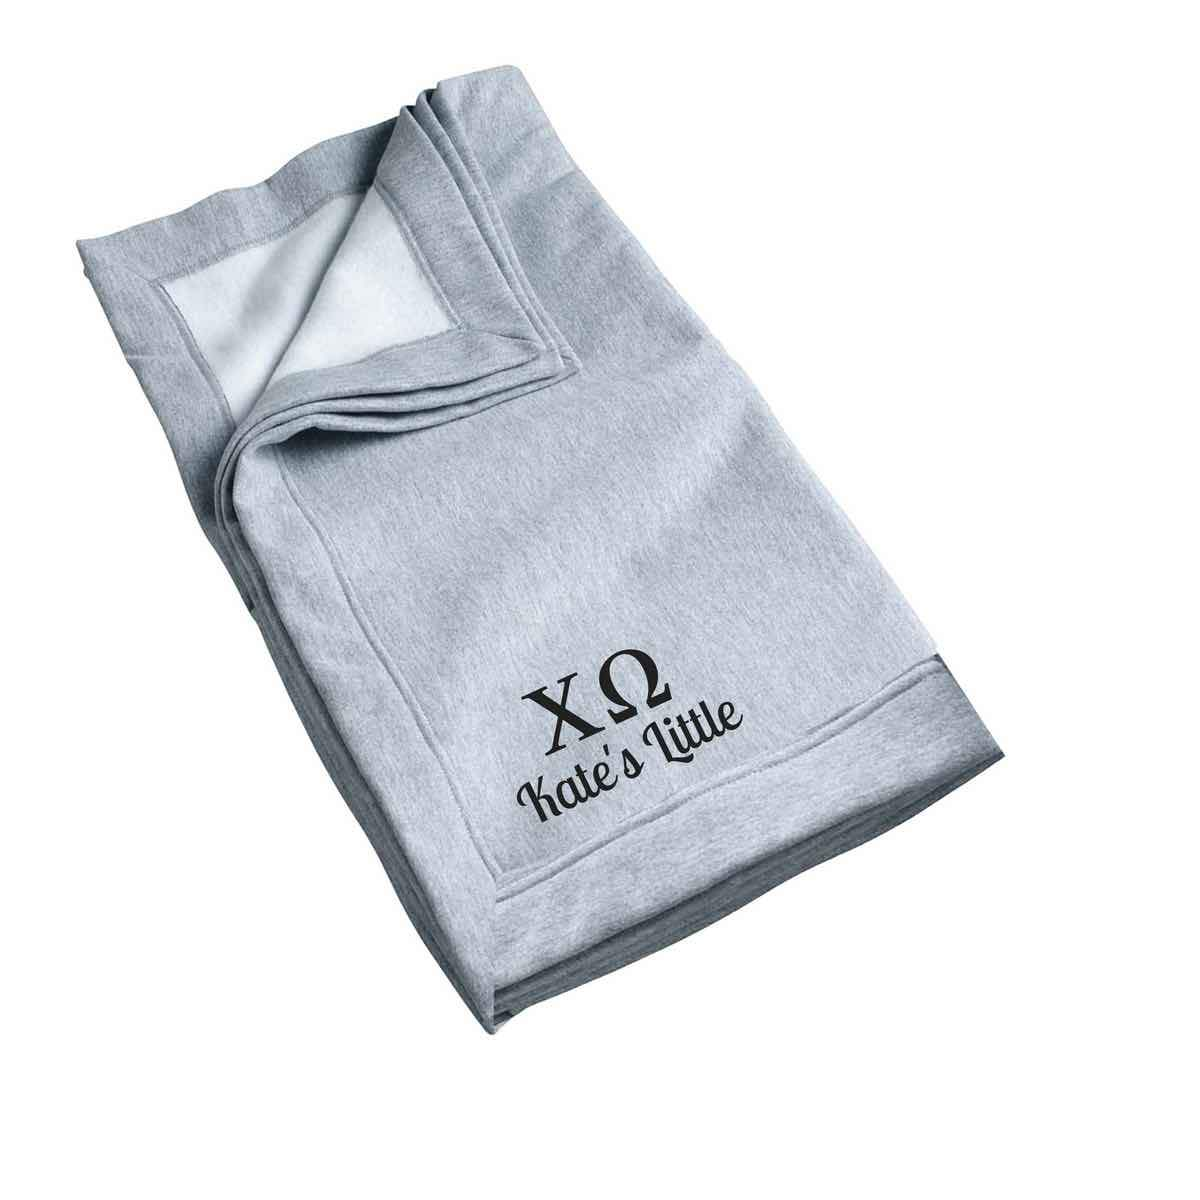 Chi Omega Little Blanket, Recommended One Size Fits All Personalized Big Little Gift